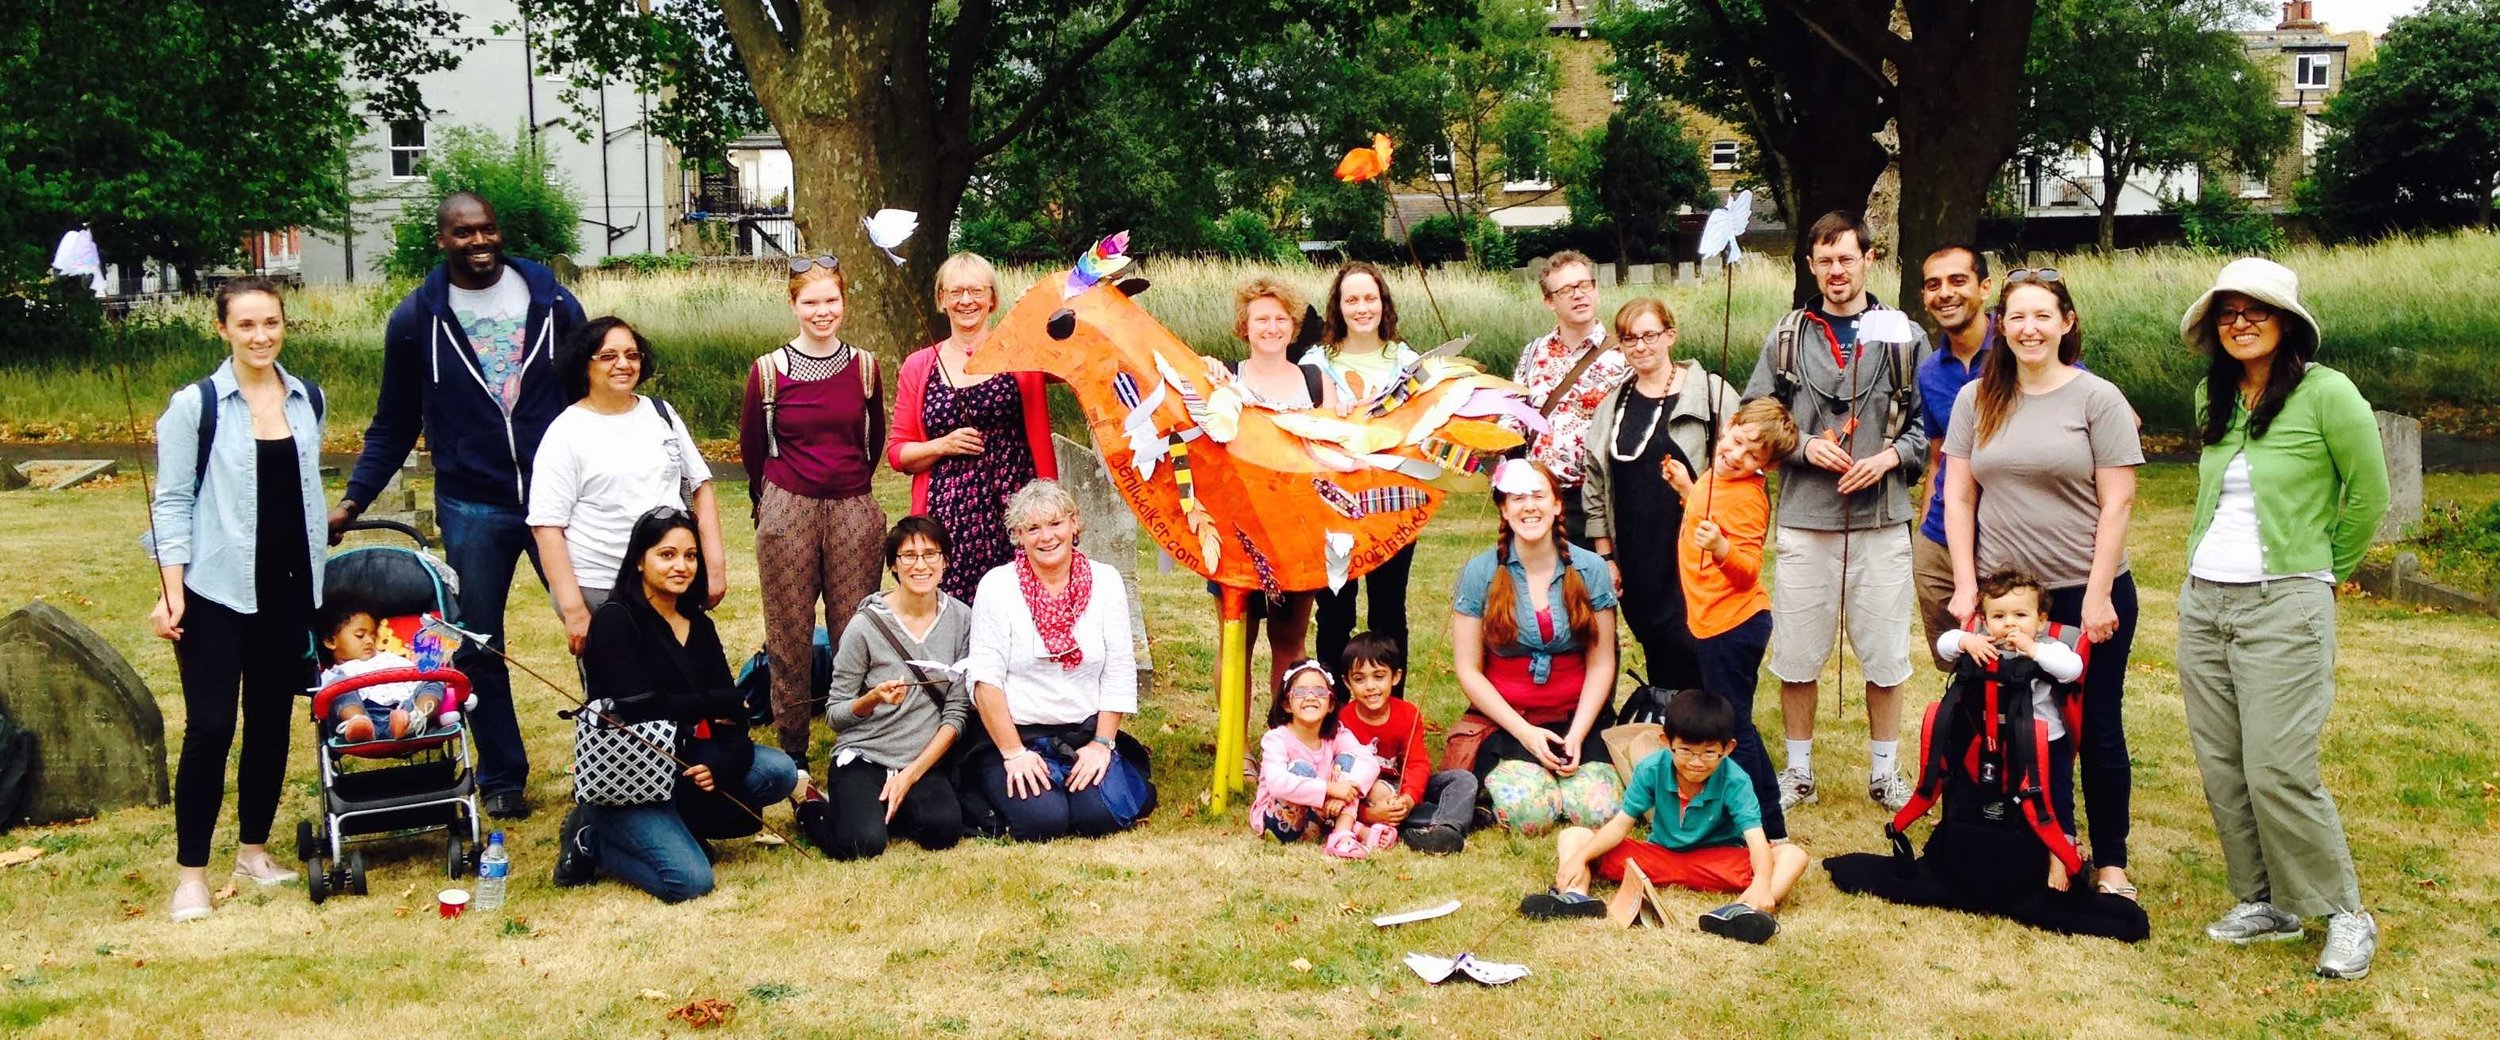 Our  Tooting Field Days  project; the July event, during which a group walked a massive orange bird across South London green spaces.